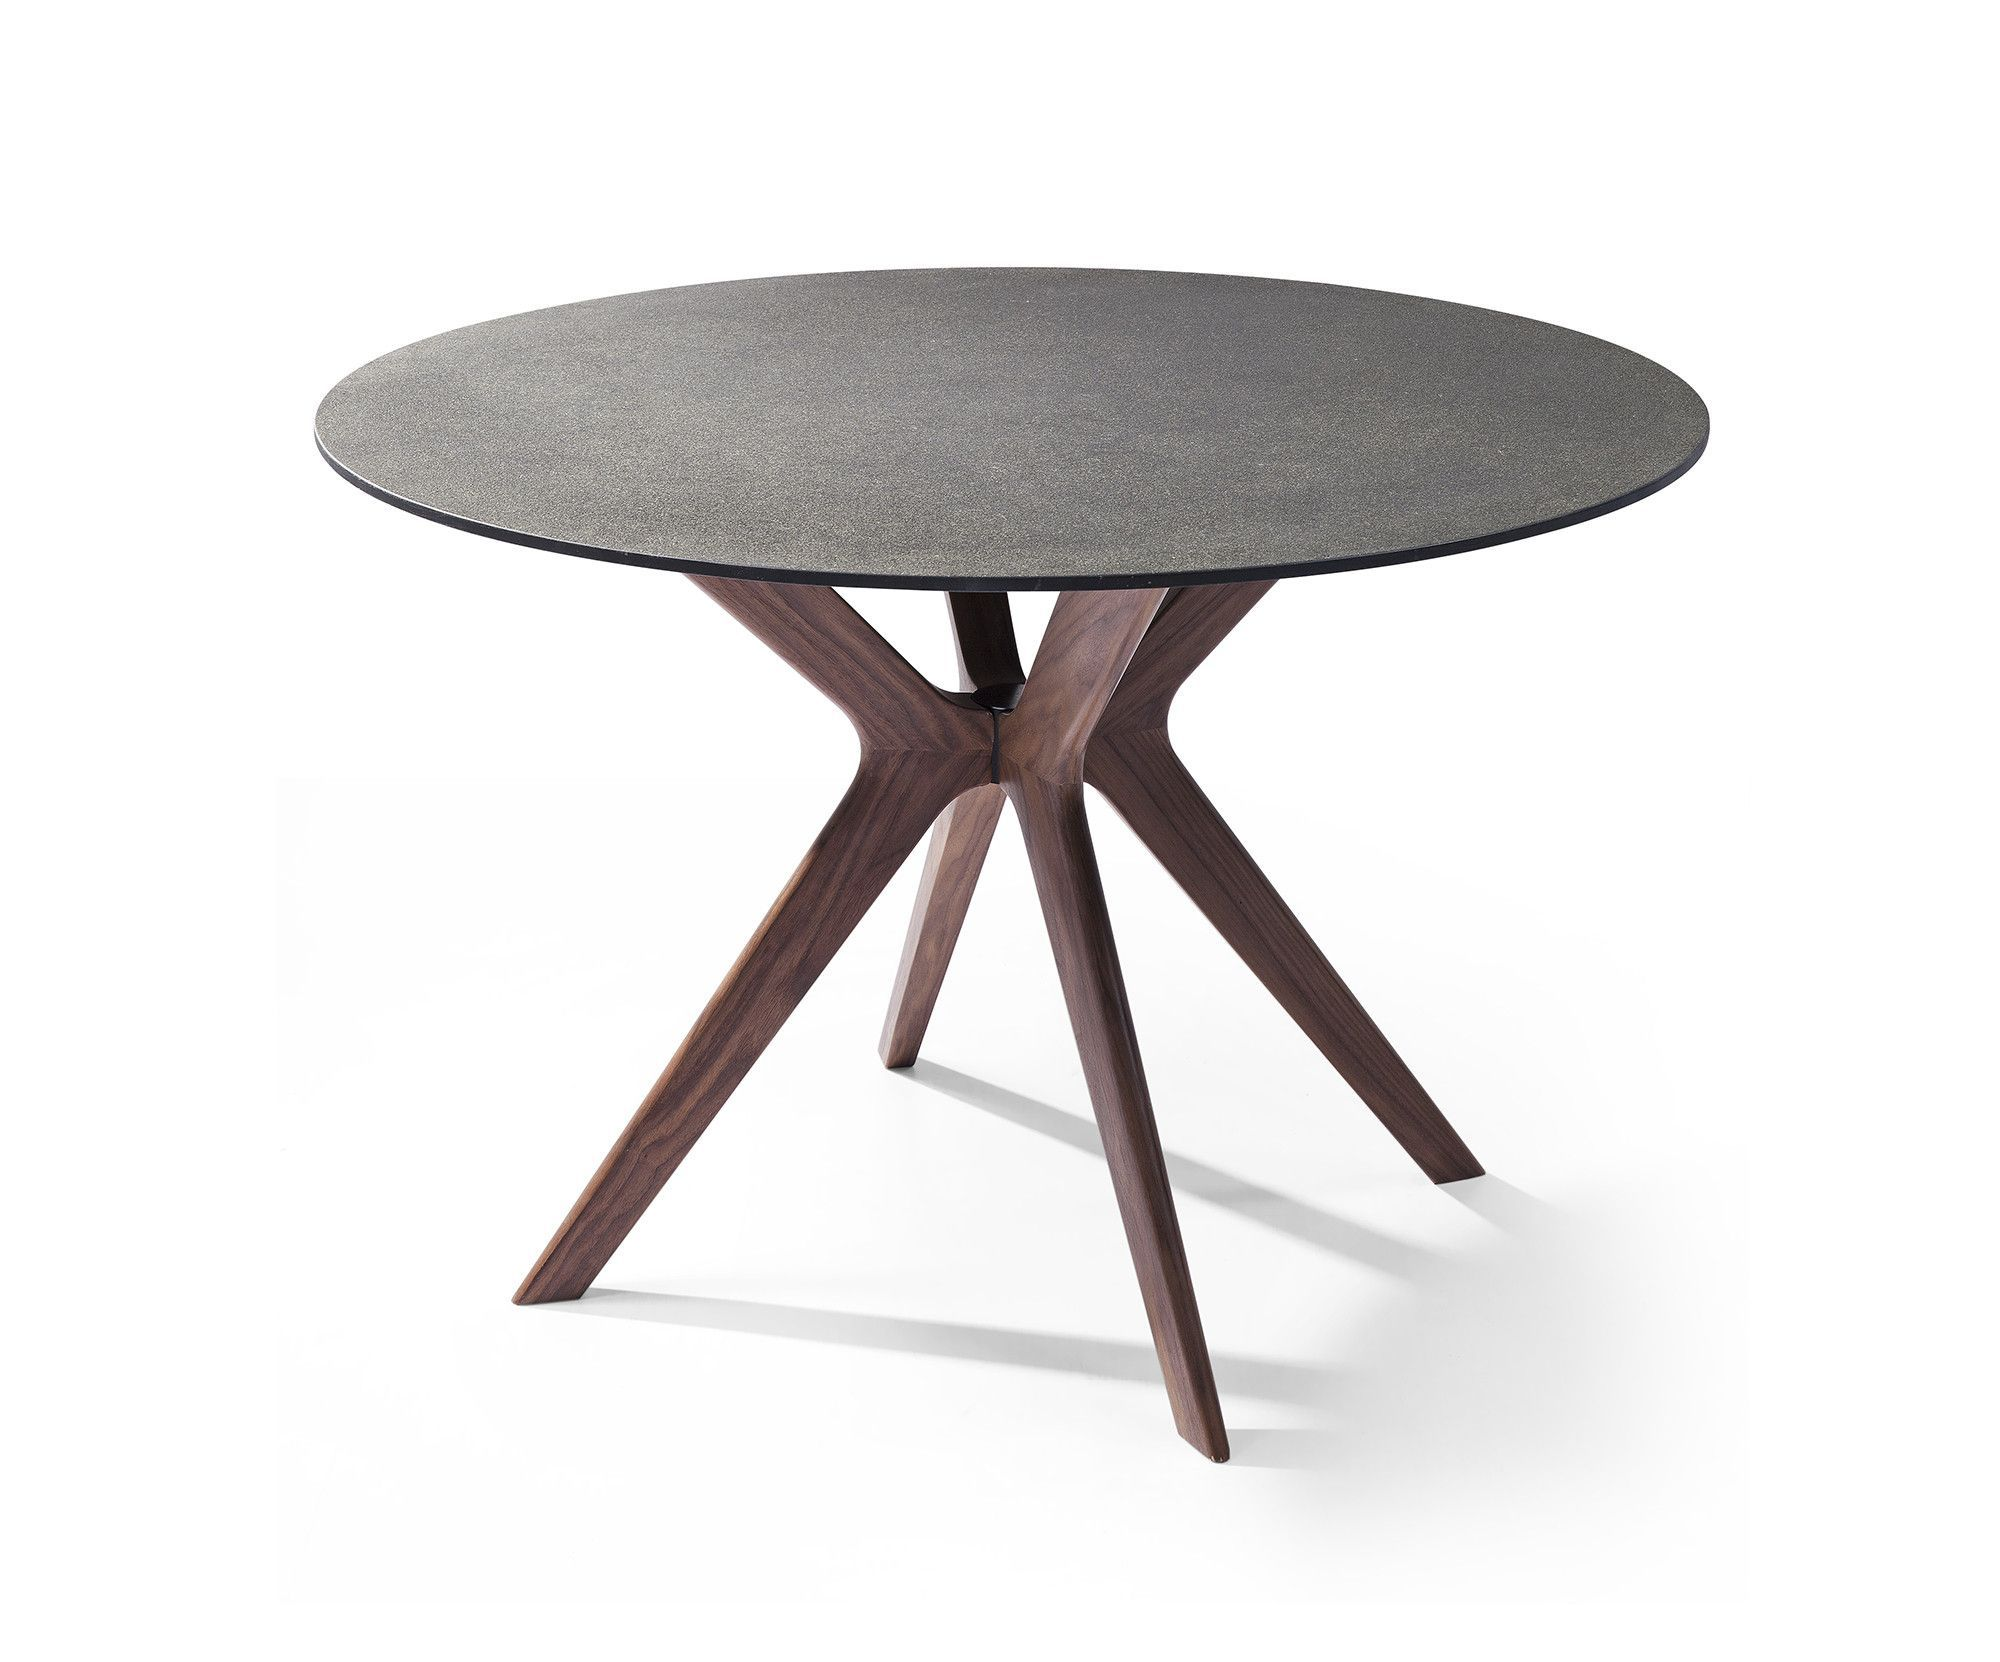 Redondo Round Dining Table Glass And Stone Top Dining Table Round Dining Table Glass Dining Table